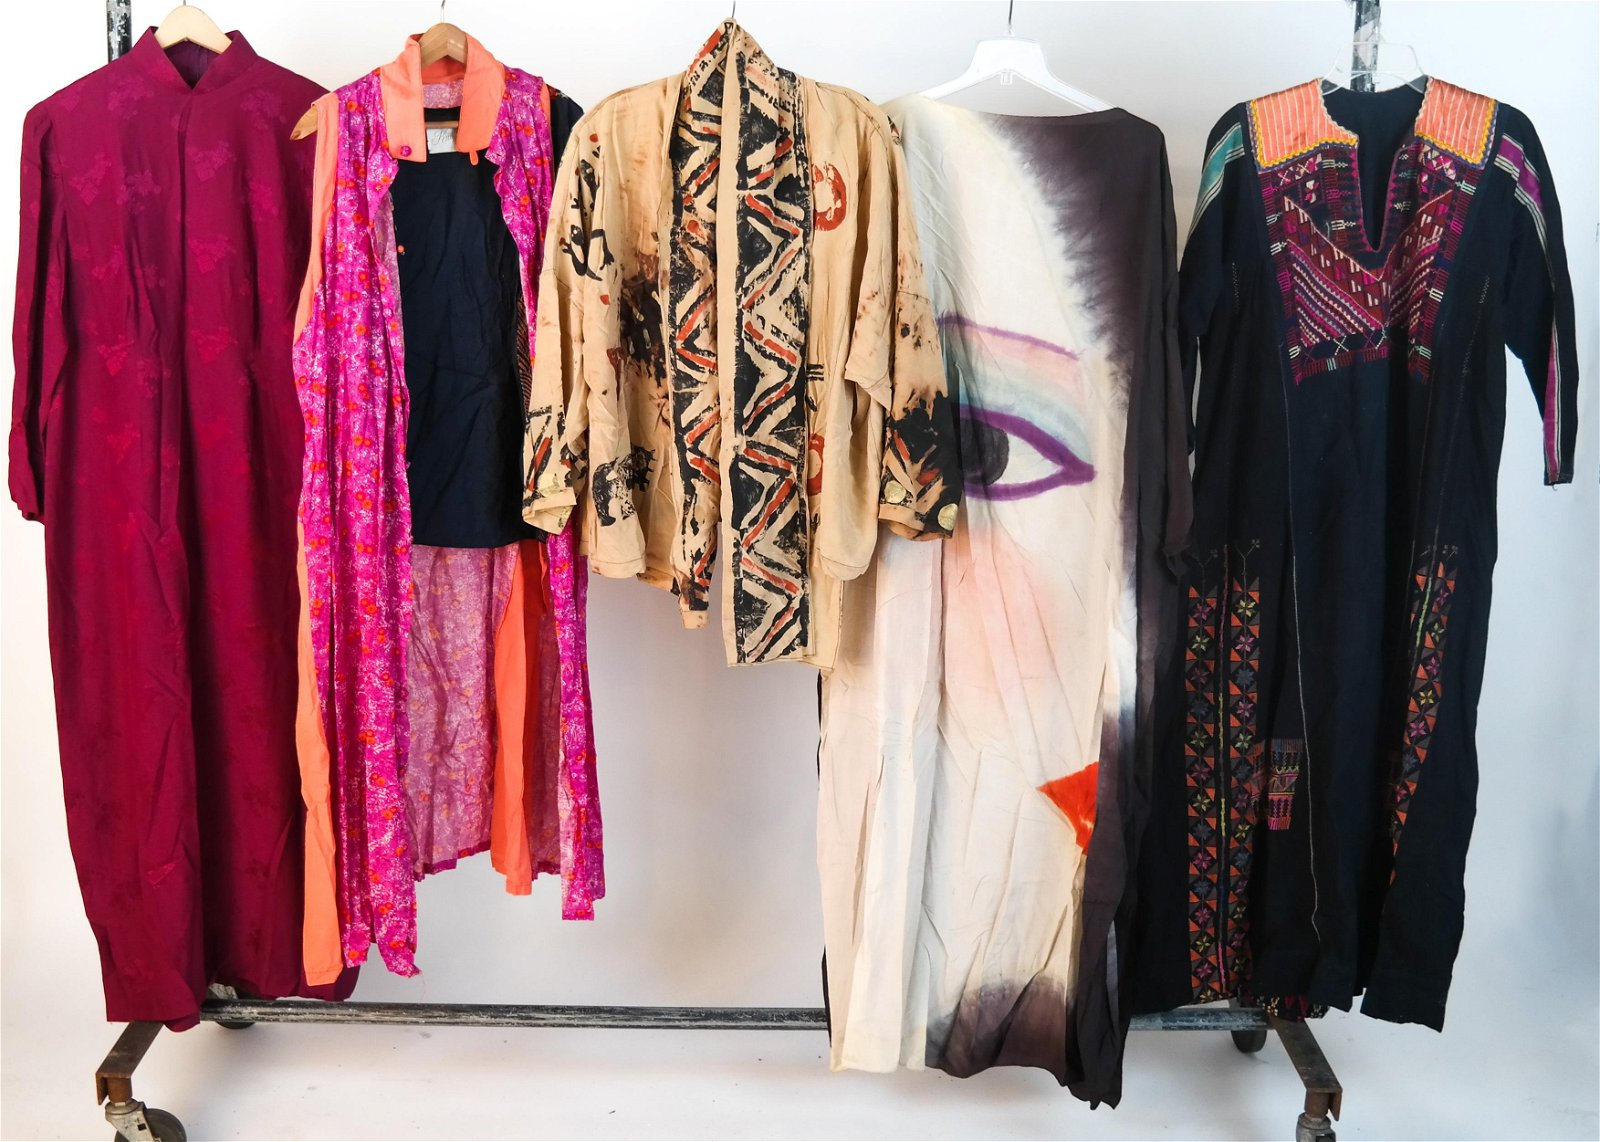 Lot of 5 Vintage Asian Clothing Items